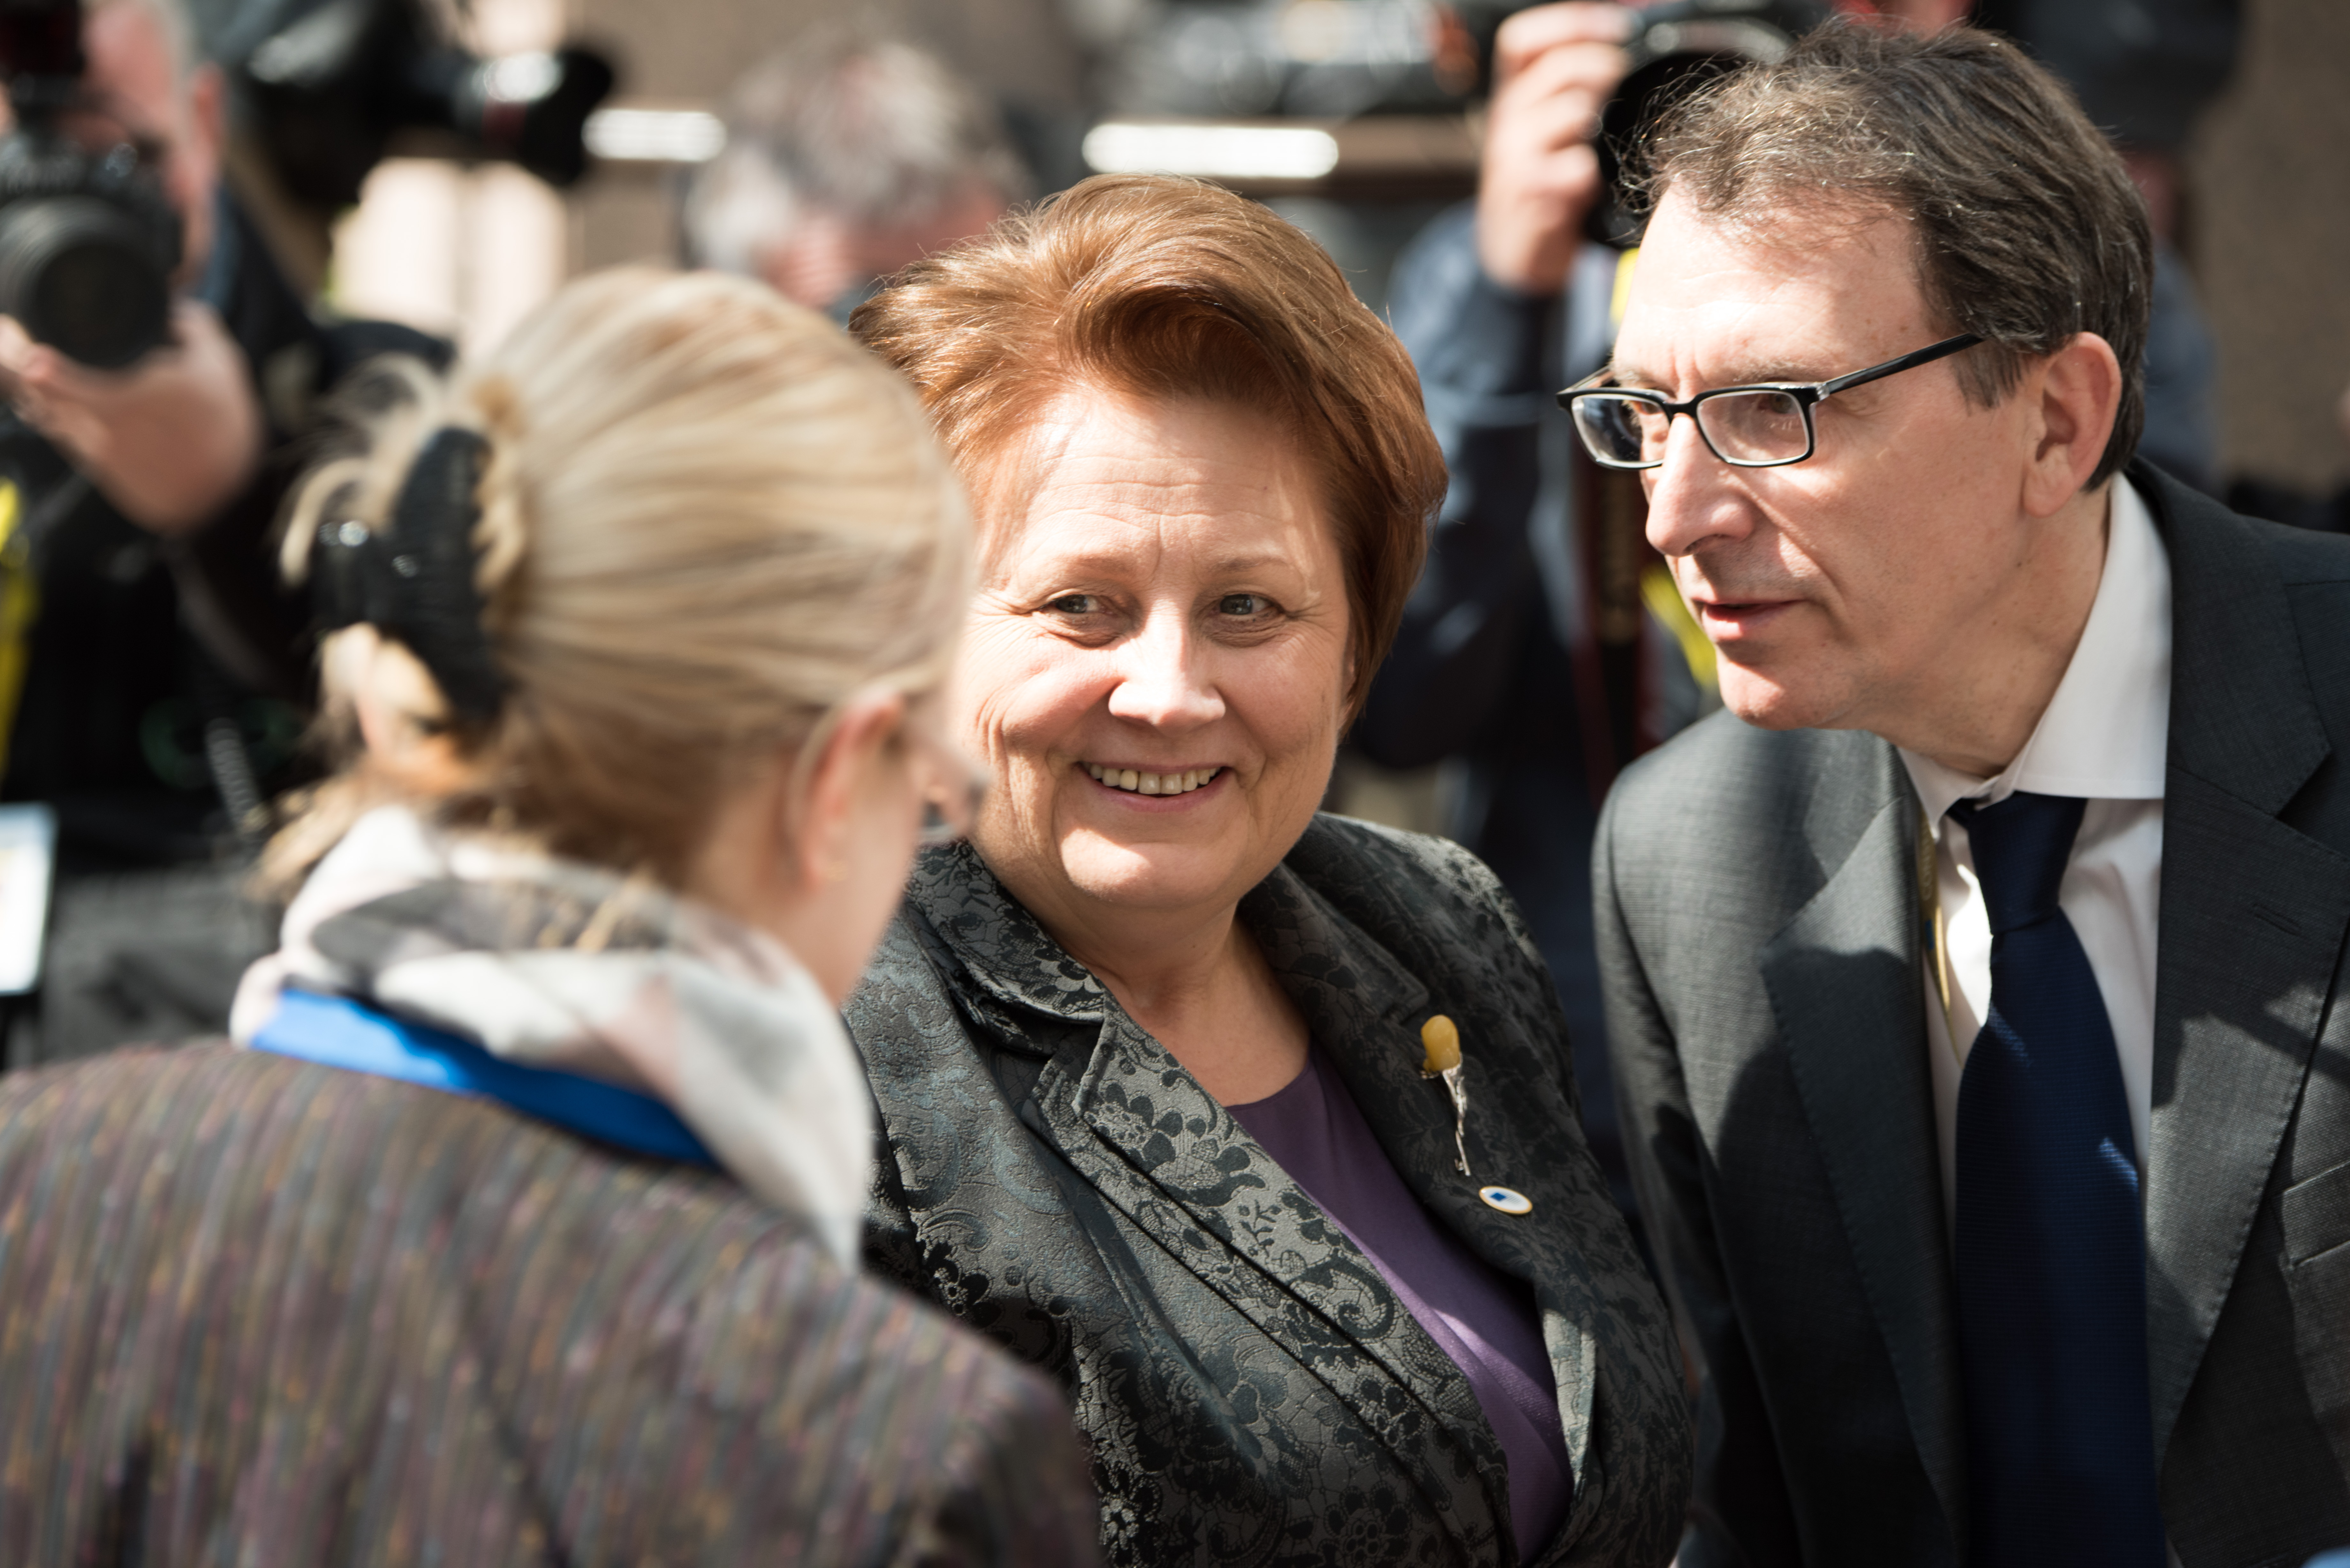 Laimdota Straujuma, Latvian Prime Minister and President in office of the Council of the EU, in the centre